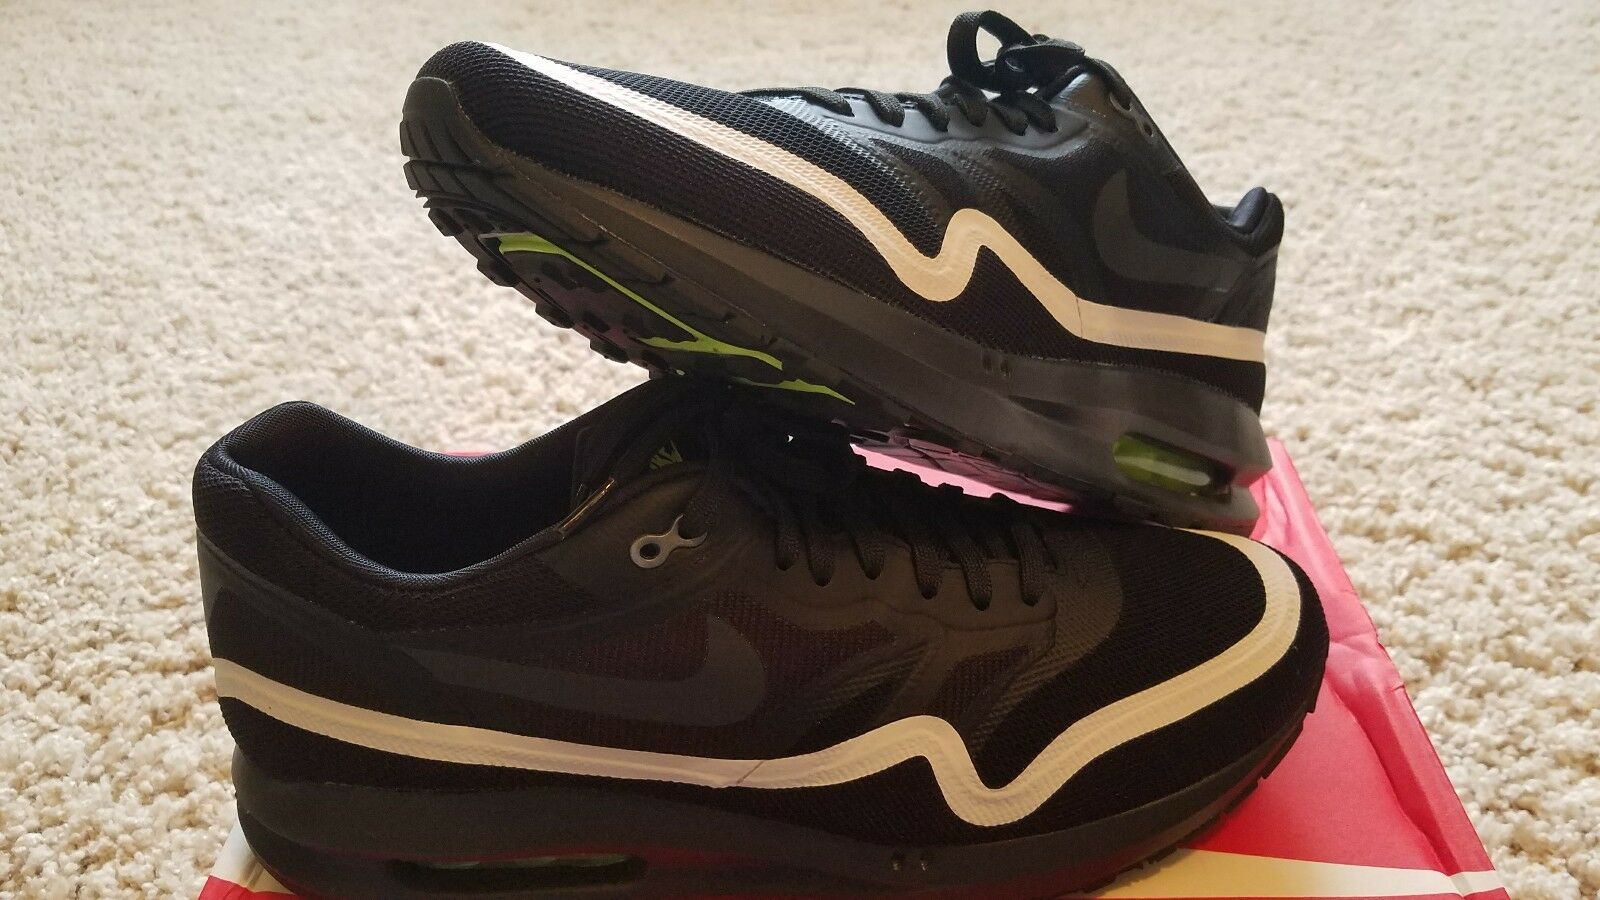 Nike Air Max Lunar1 Black Anthracite White Volt, Size Size Size 10.5, Brand New  ac1975